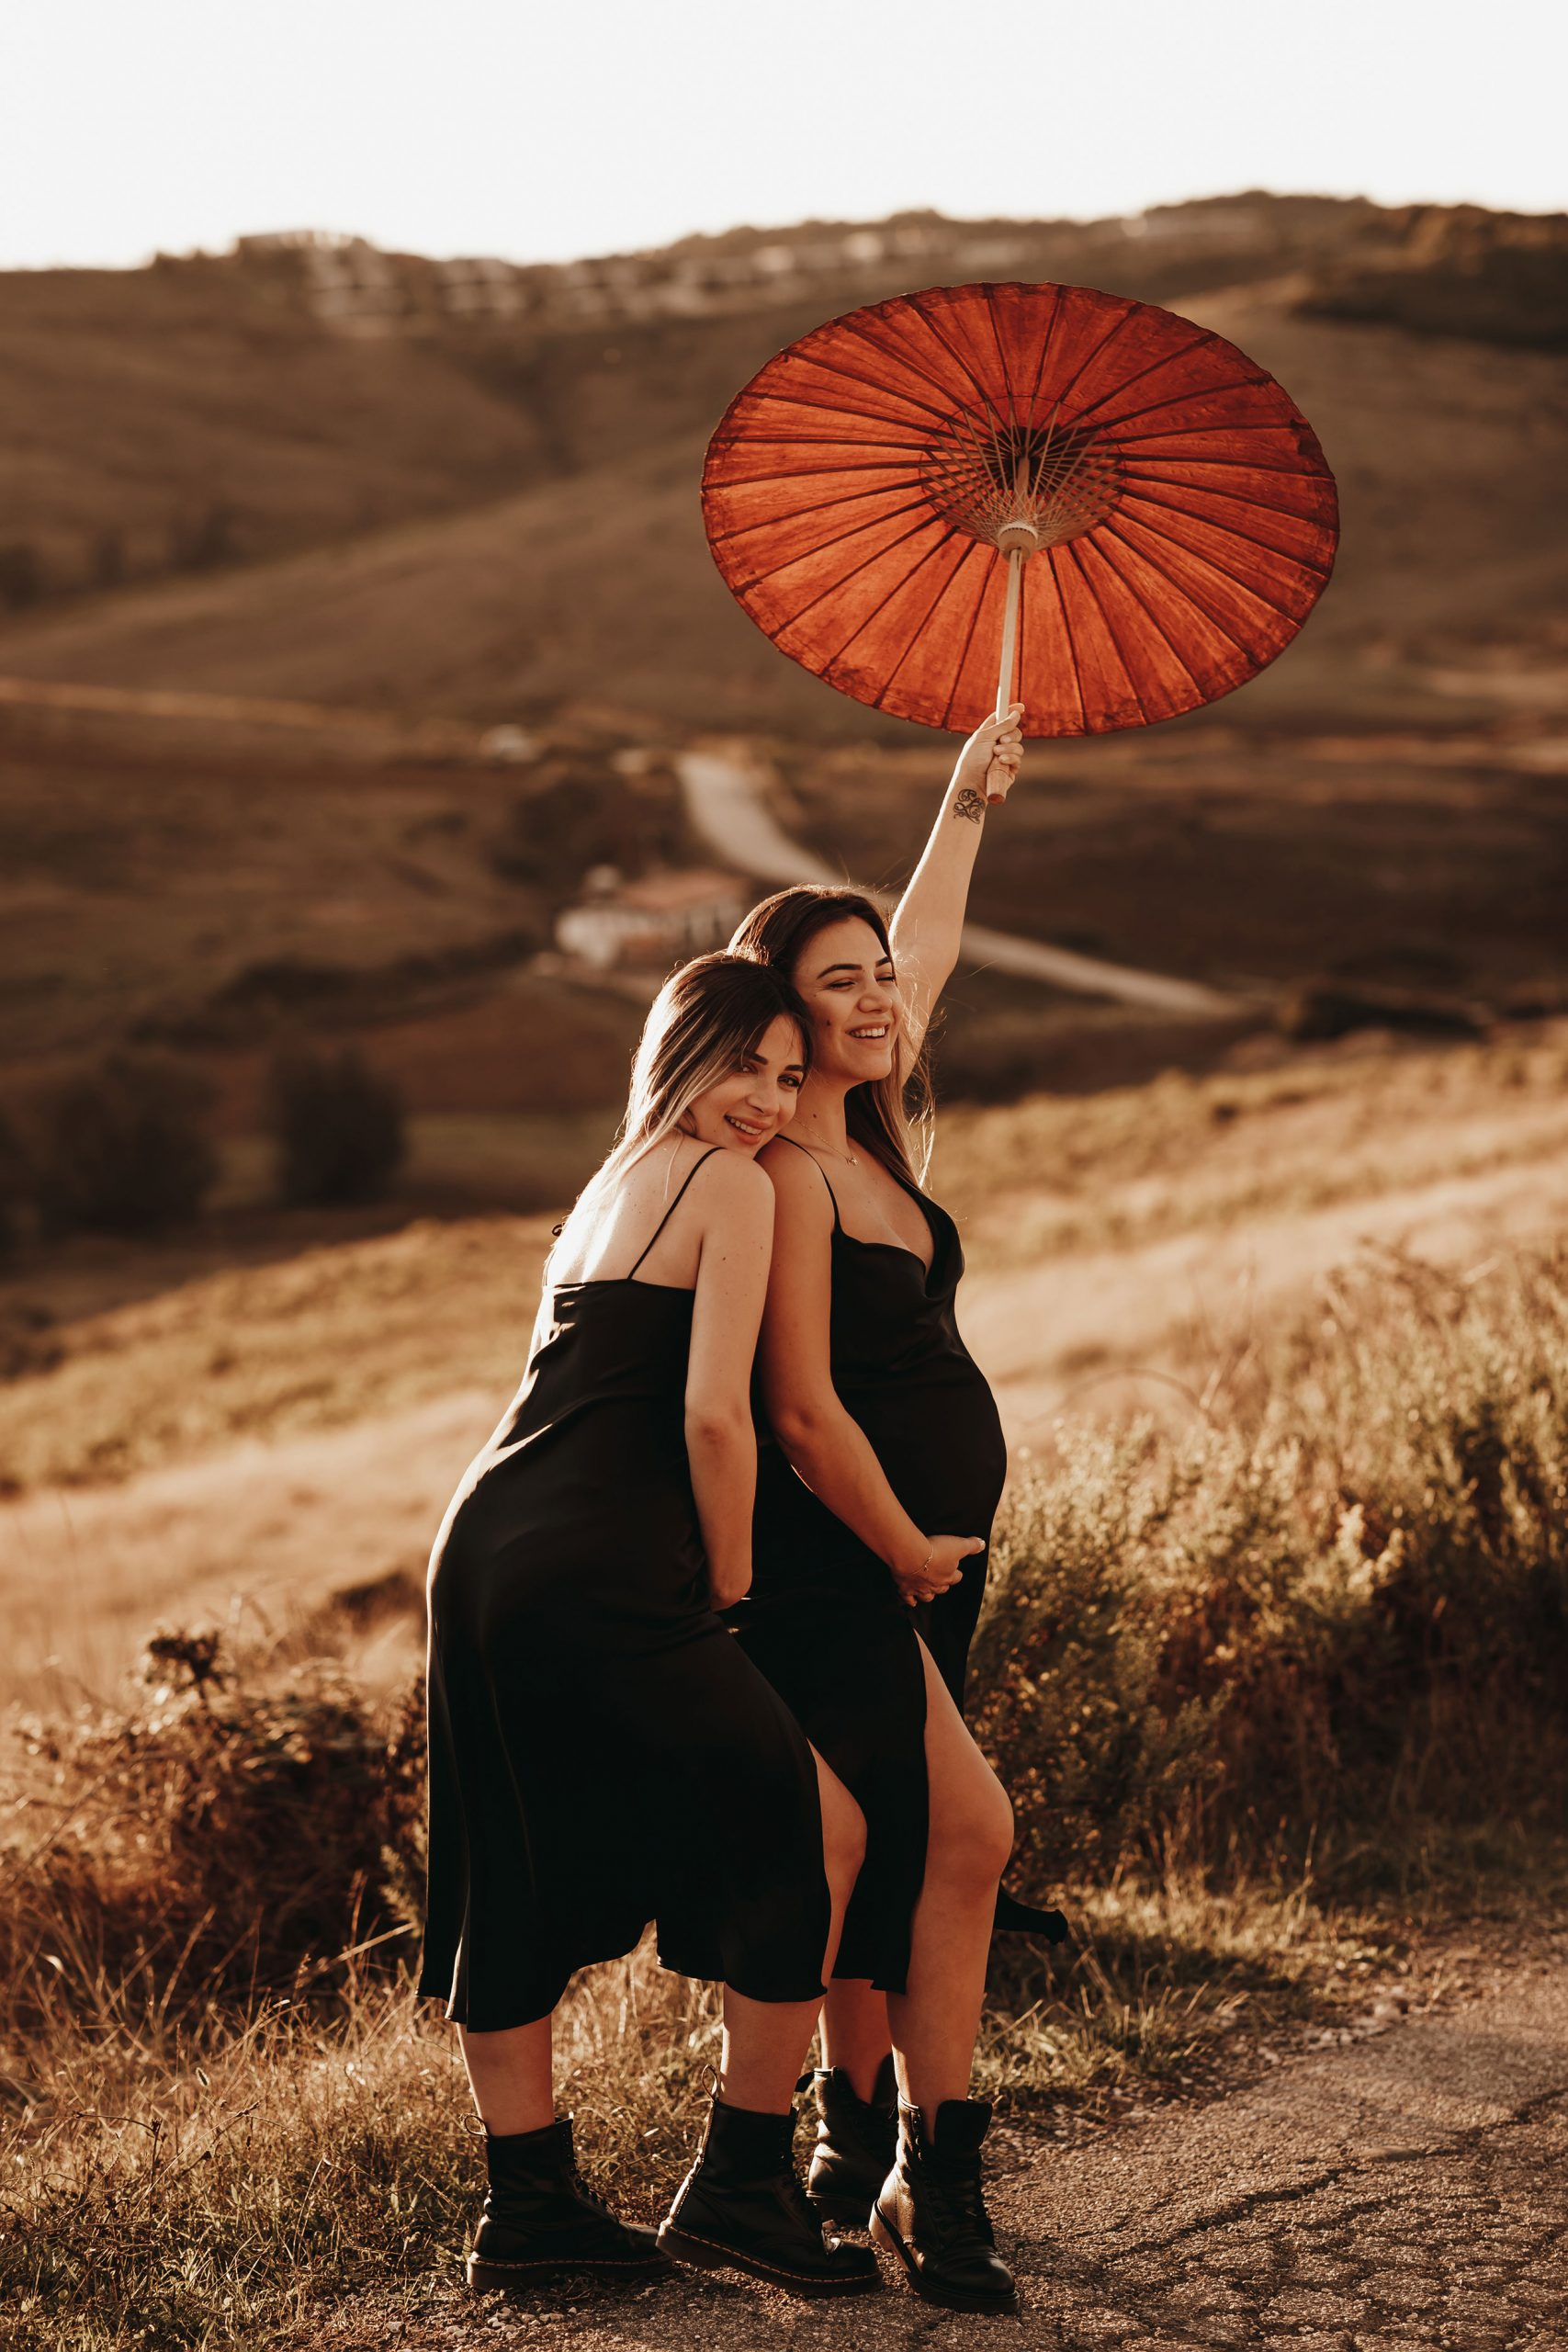 Sara Hoxha and her friend posing with an umbrella in nature during a maternity photo session